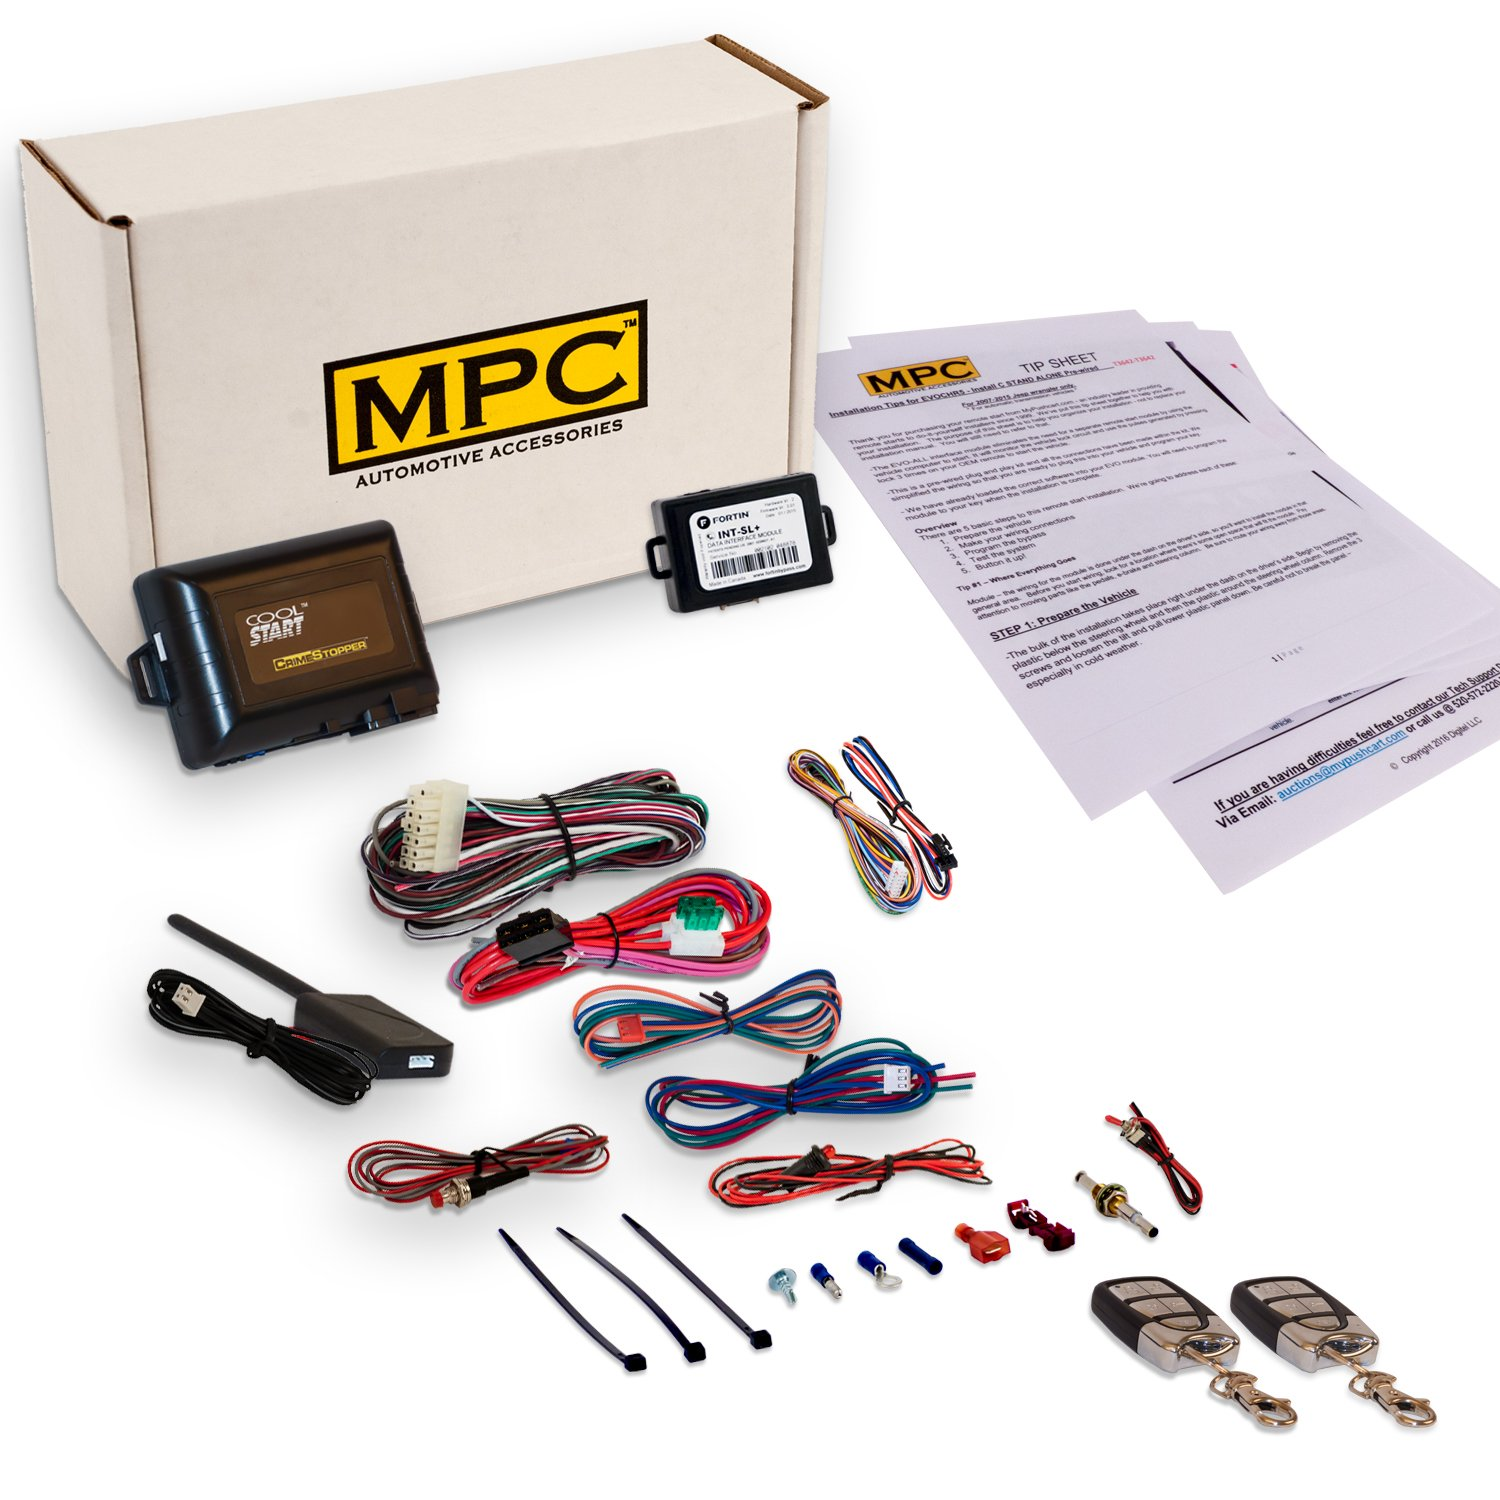 Complete Remote Start Kit w/Keyless Entry For 1999-2004 Jeep Grand Cherokee - w/Bypass and (2) 5 Button 1 Way Remotes